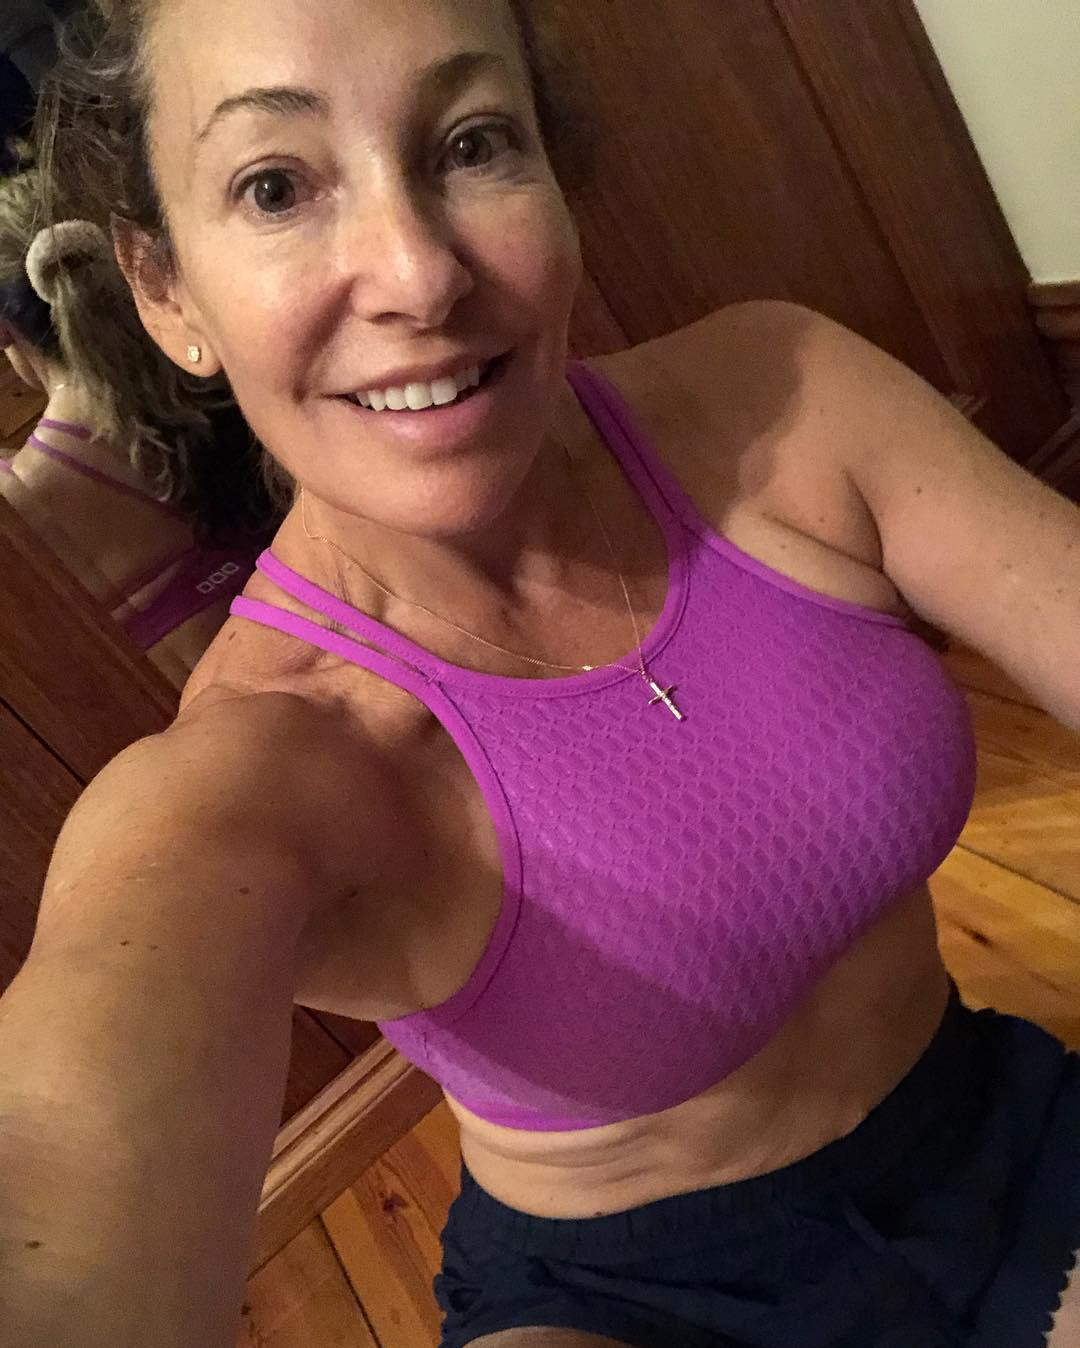 fit over 40 - hot selfies from athletic cougar bertha from wisconsin (leggings) picture 5